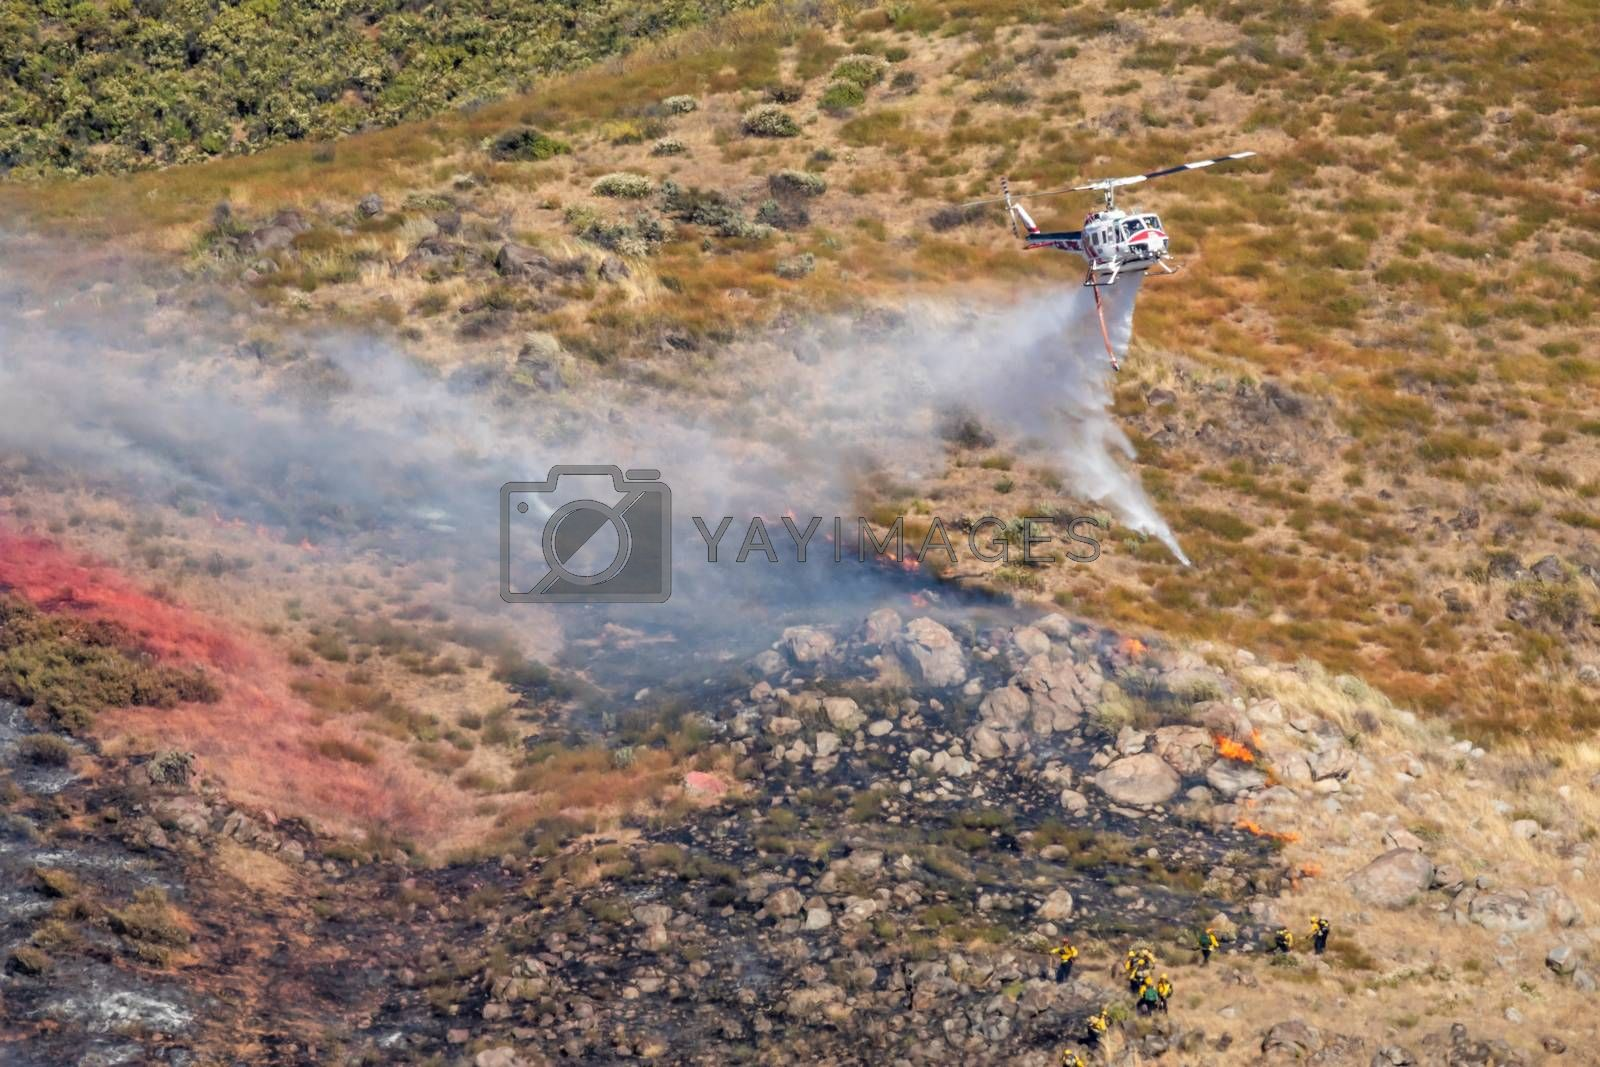 Winchester, CA USA - June 14, 2020: Cal Fire helicopter drops water on a dry hilltop wildfire near Winchester, California.